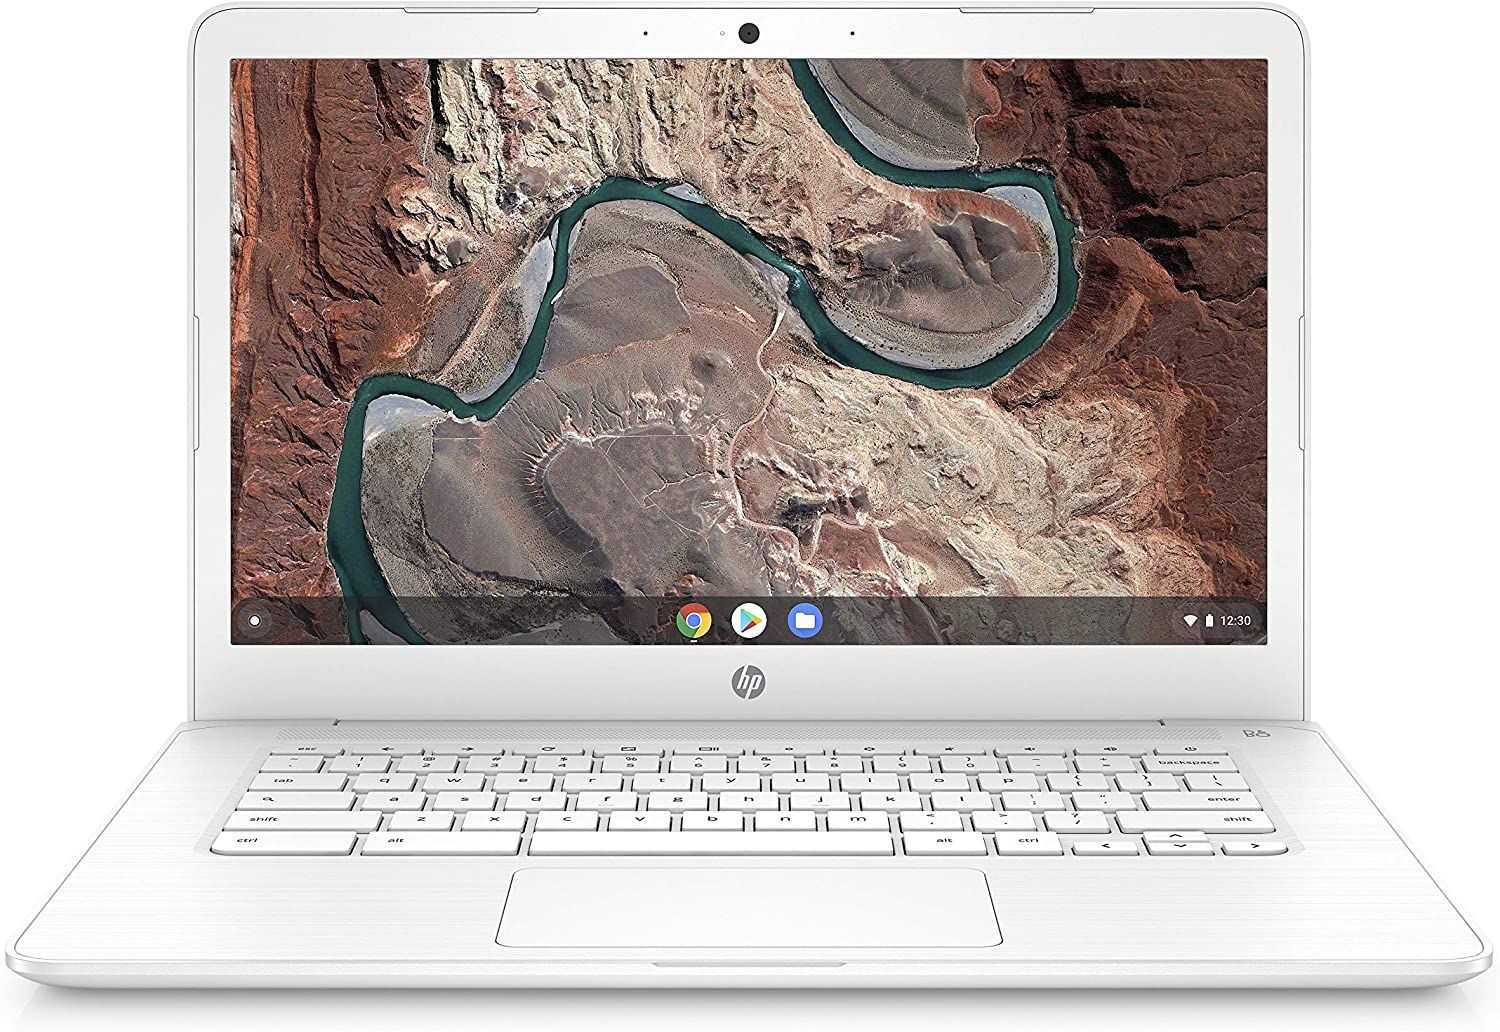 HP Chromebook 14-inch Laptop with 180-Degree Hinge, AMD Dual-Core A4-9120 Processor, 4 GB SDRAM, 32 GB eMMC Storage, Chrome OS (14-db0030nr, Snow White) (Renewed)